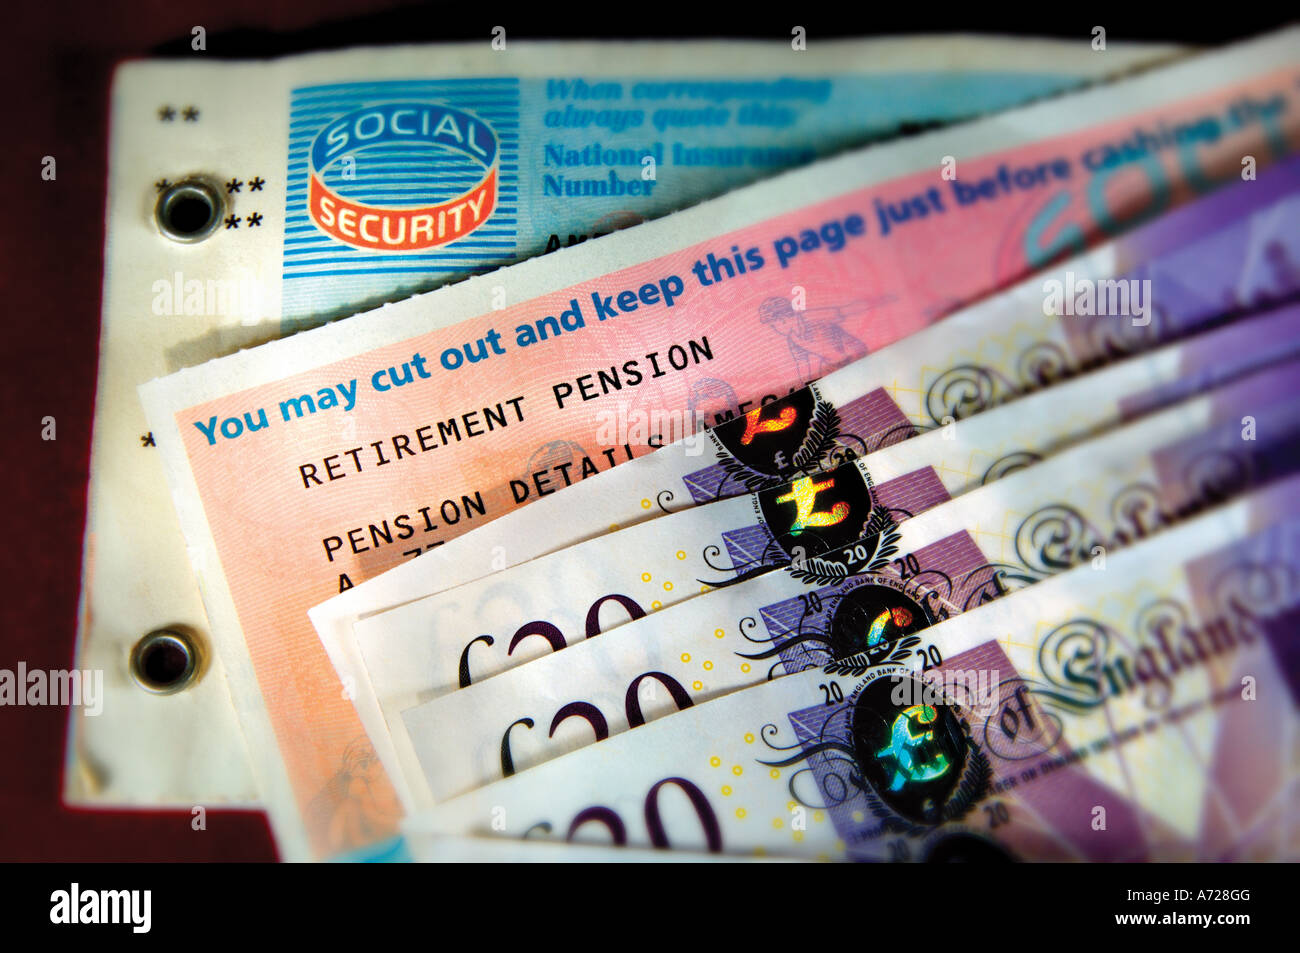 retirement pension and social security Calculate how much retirement income you need from your savings, 401(k), pension, social security benefits and other investments to ensure your future financial security.